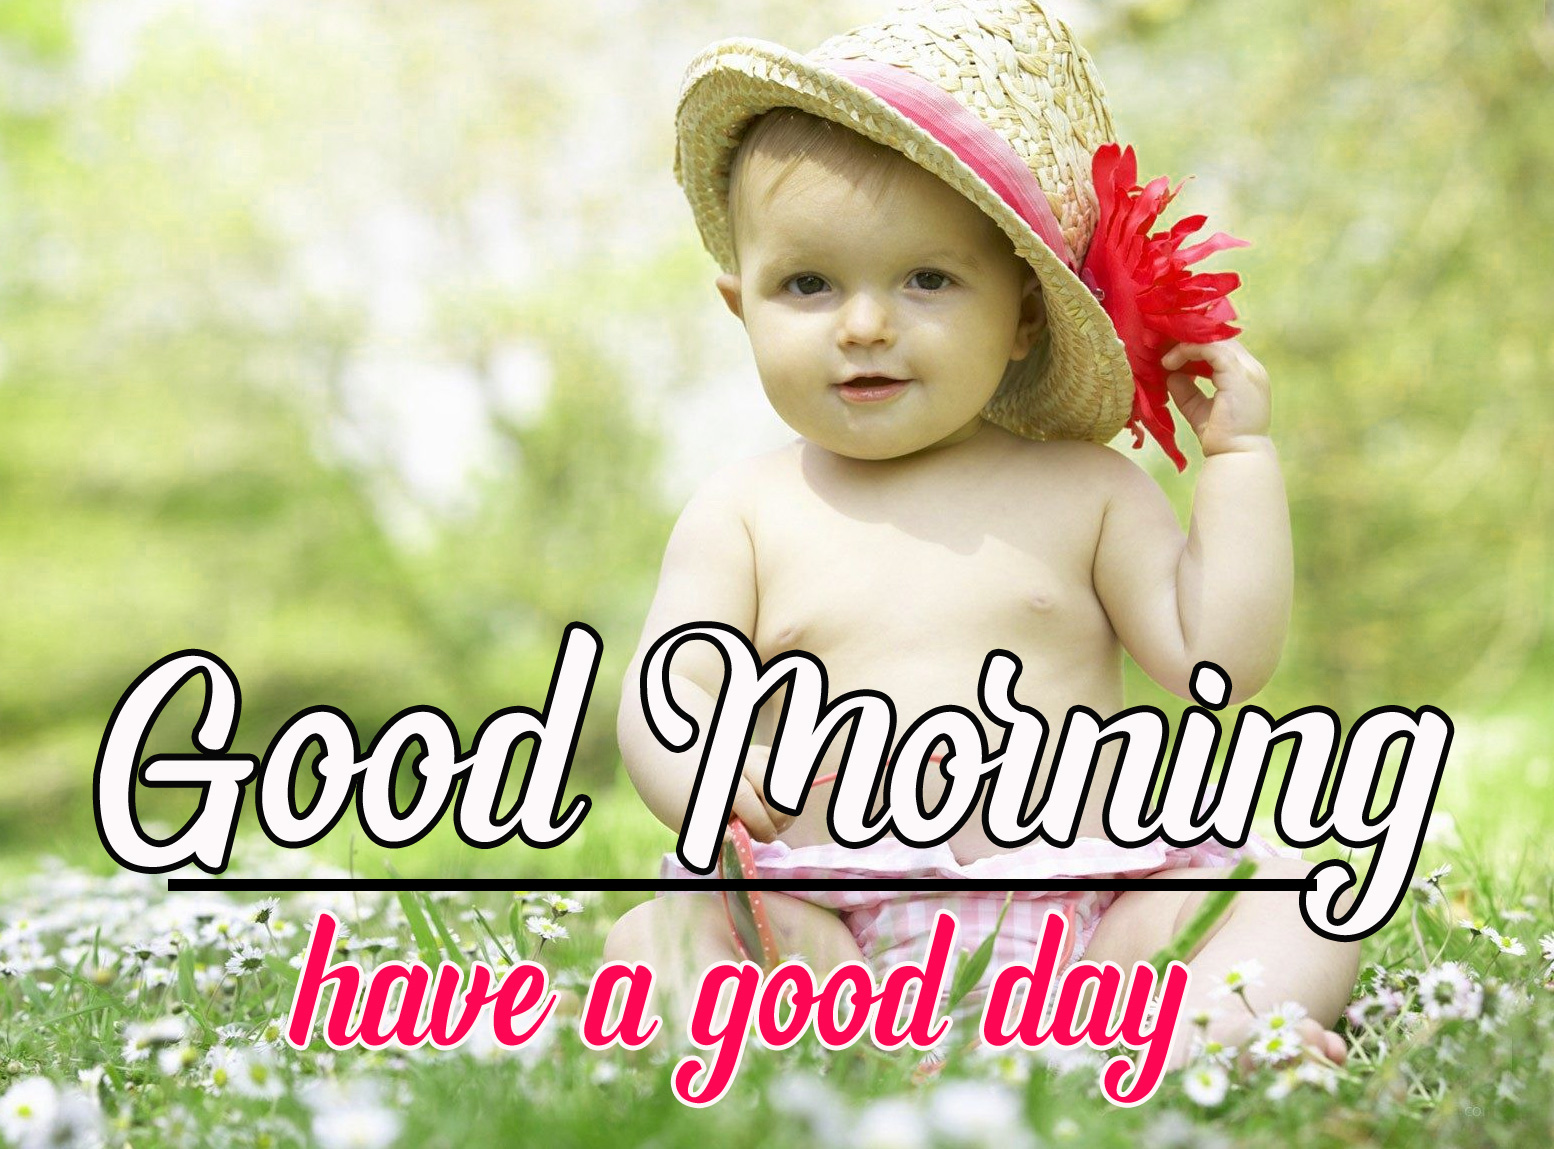 Beautiful Good Morning Images Photo Download With Cute Baby